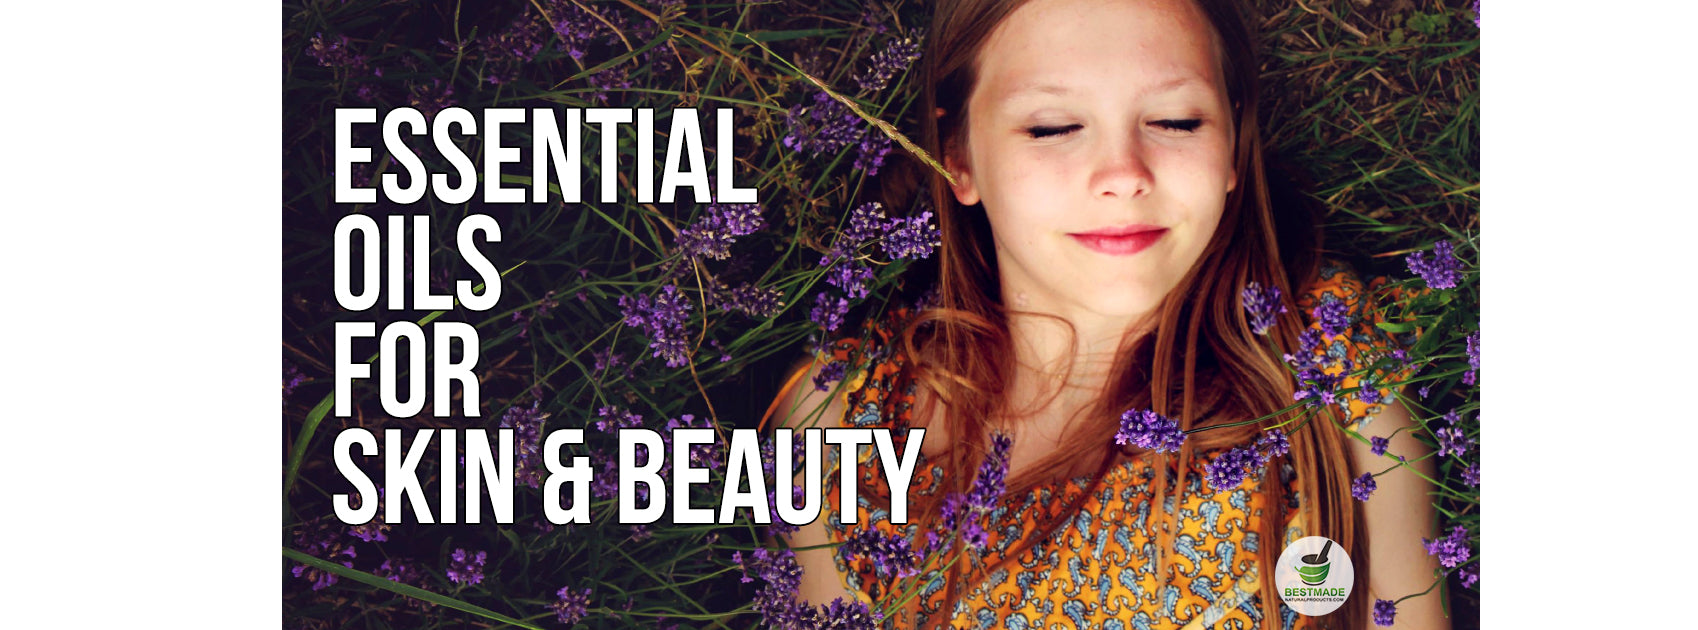 Essential Oils For Skin and Beauty